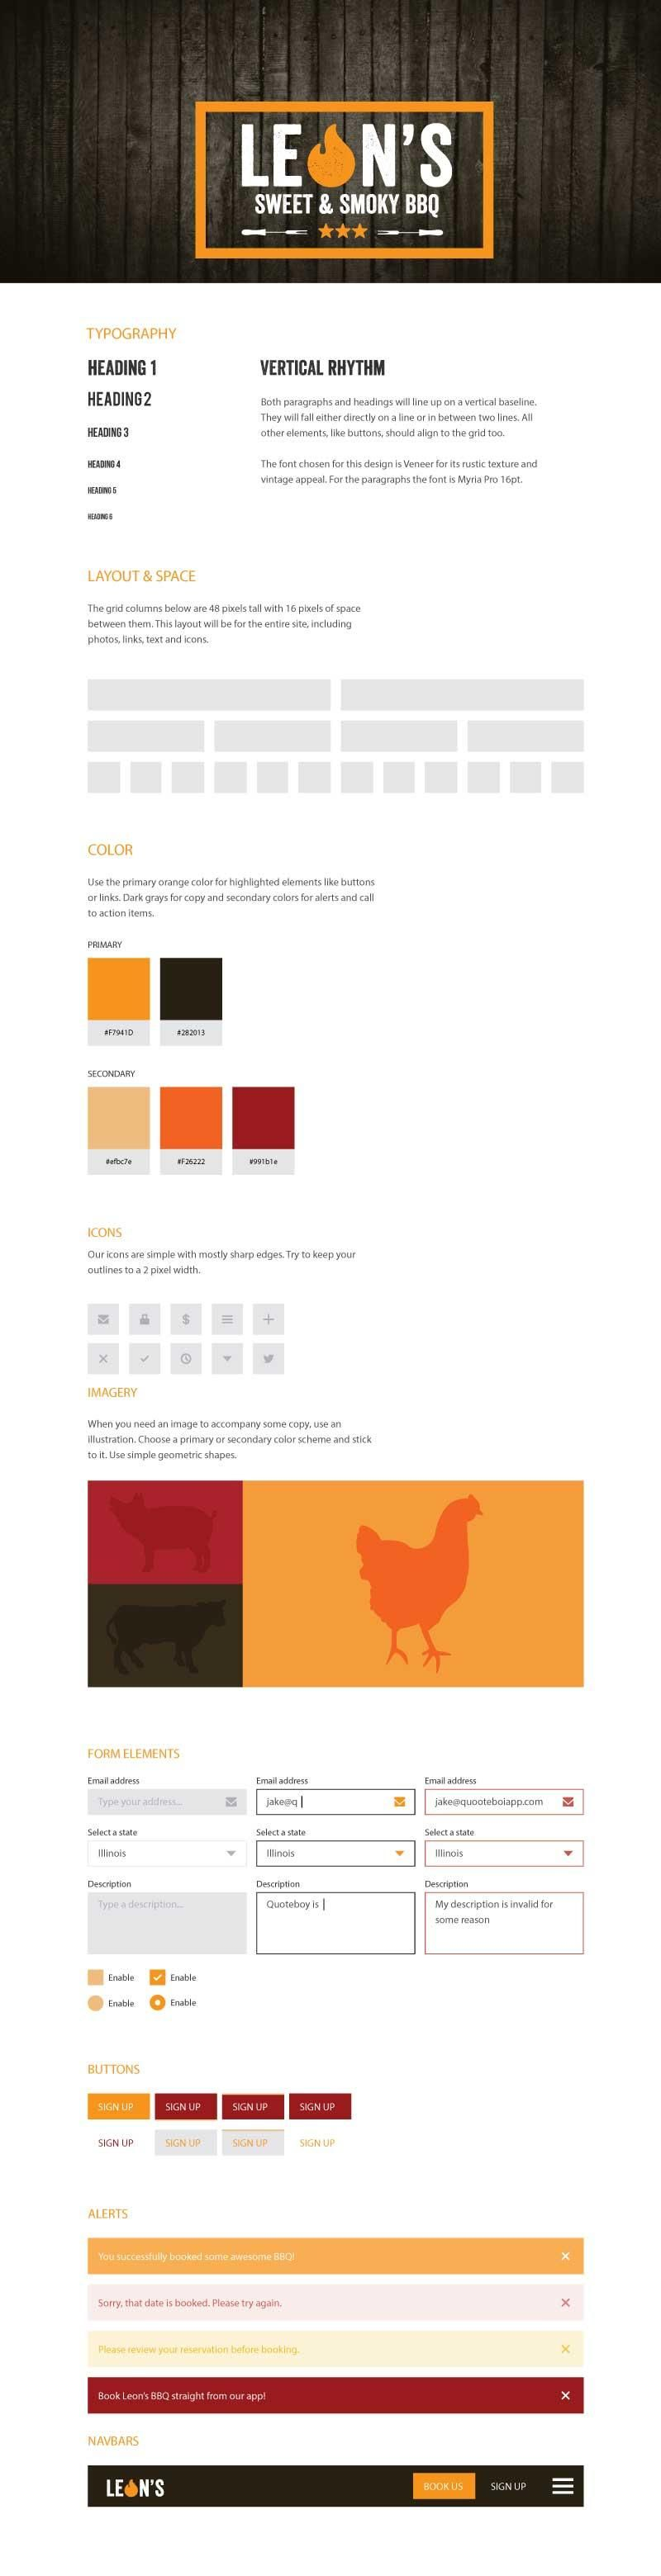 Leon's BBQ Style Guide - image 1 - student project